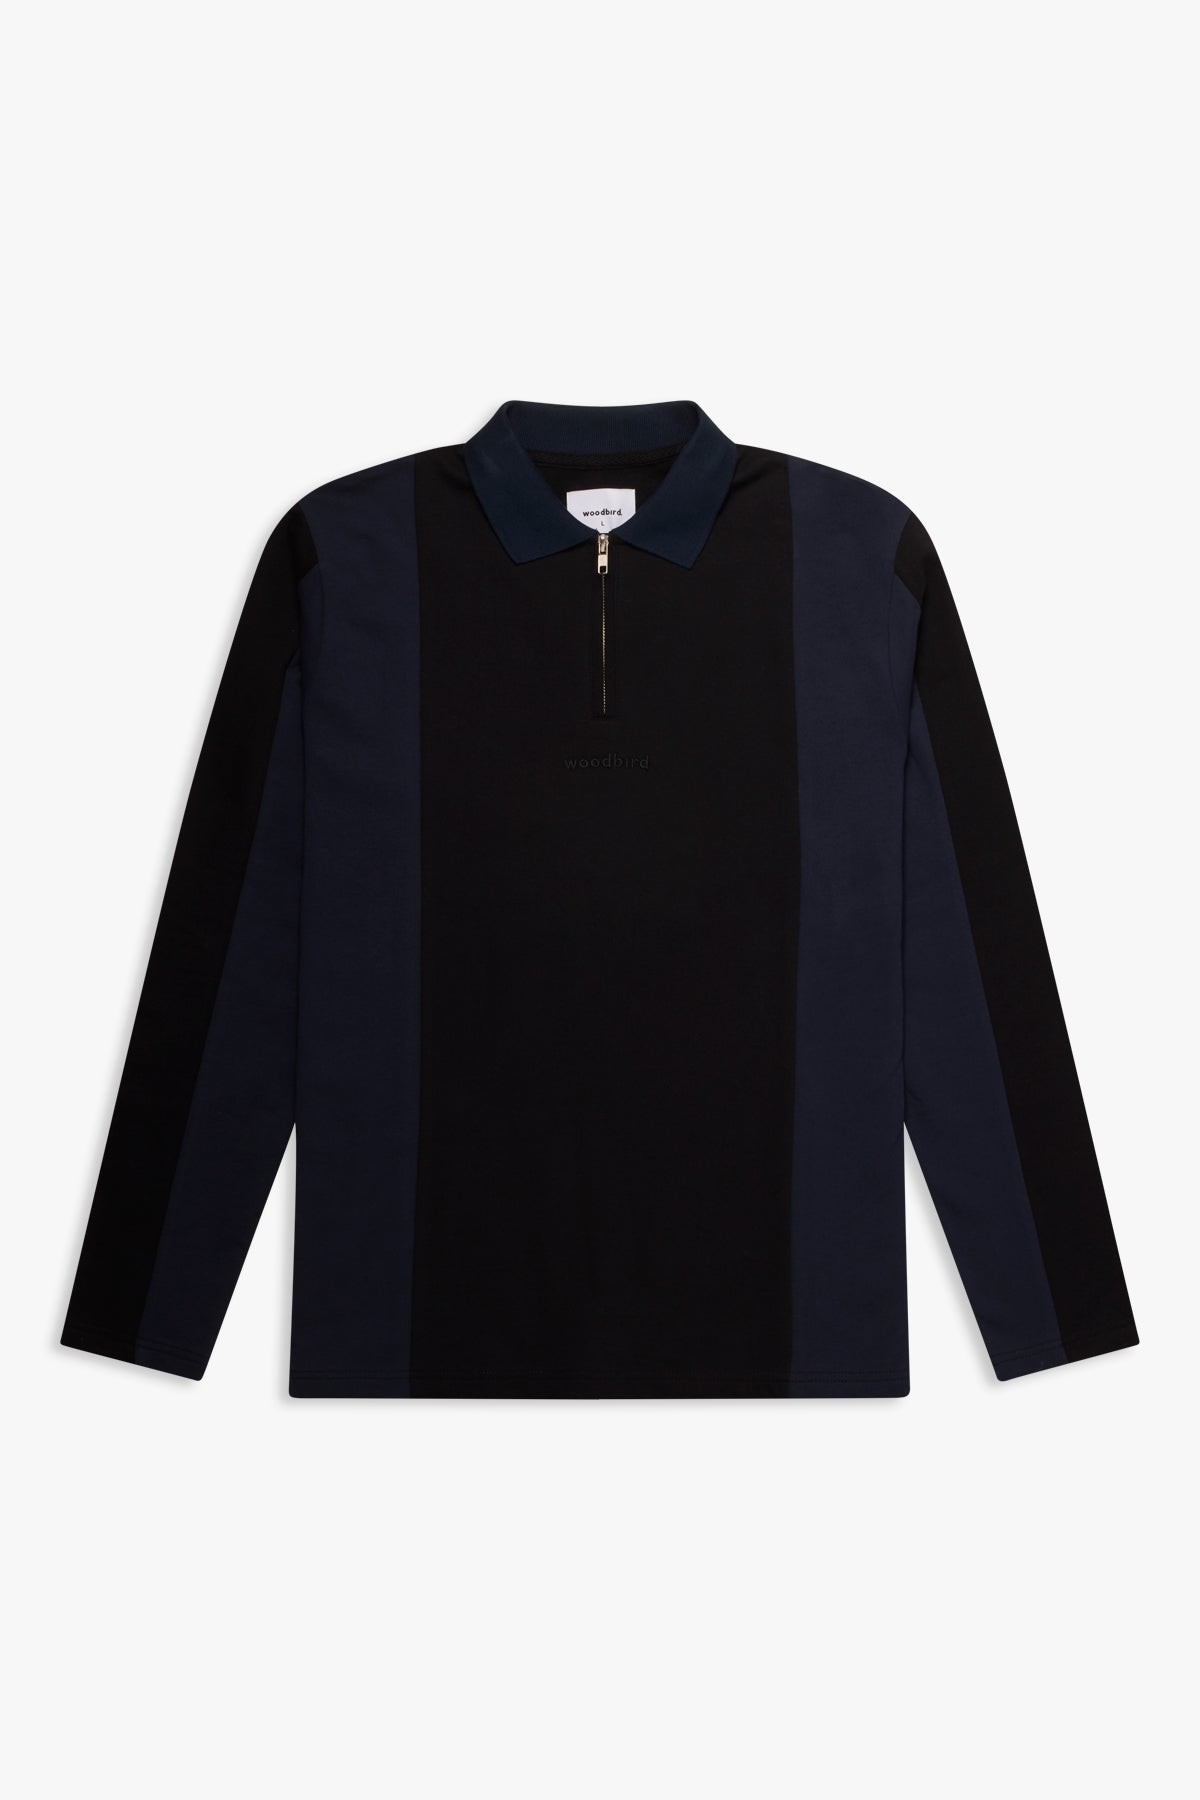 Woodbird Akla Cutzip Sweat Sweats Navy-Black